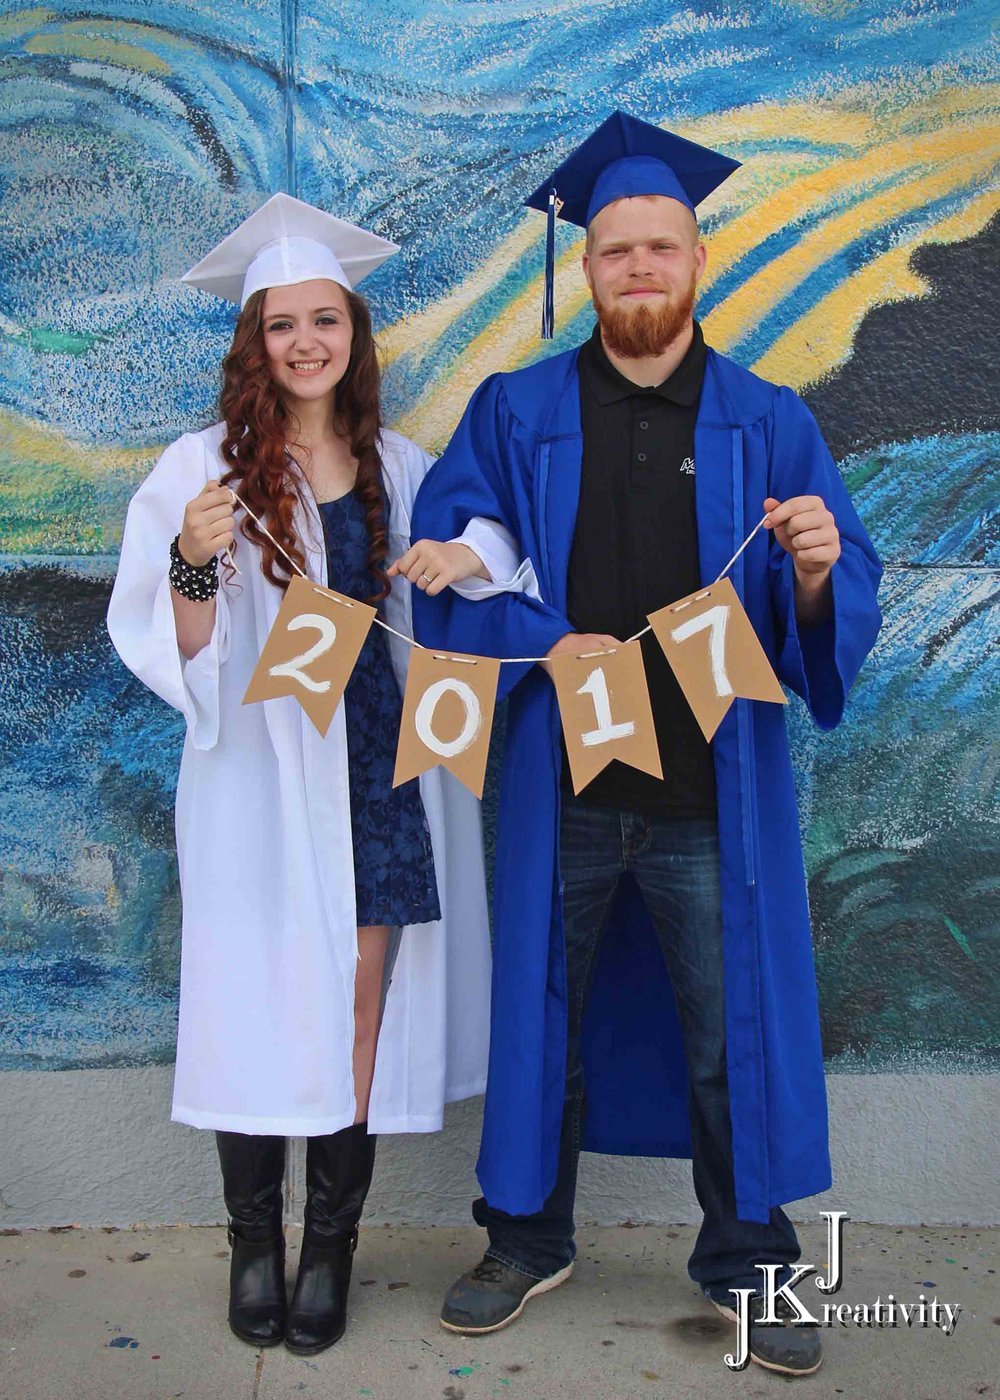 Want to schedule your Cap & Gown Session with a friend?  ...check out our 30 minute Cap & Gown Doubles Session    $25 per person if paid separate, $40 if paid together  Each graduate will receive: access to an online gallery of your photo proofs, 10 gallery proofs with simple edits (cropping & color correction), 3 free digital downloads of your choice    Click here to schedule